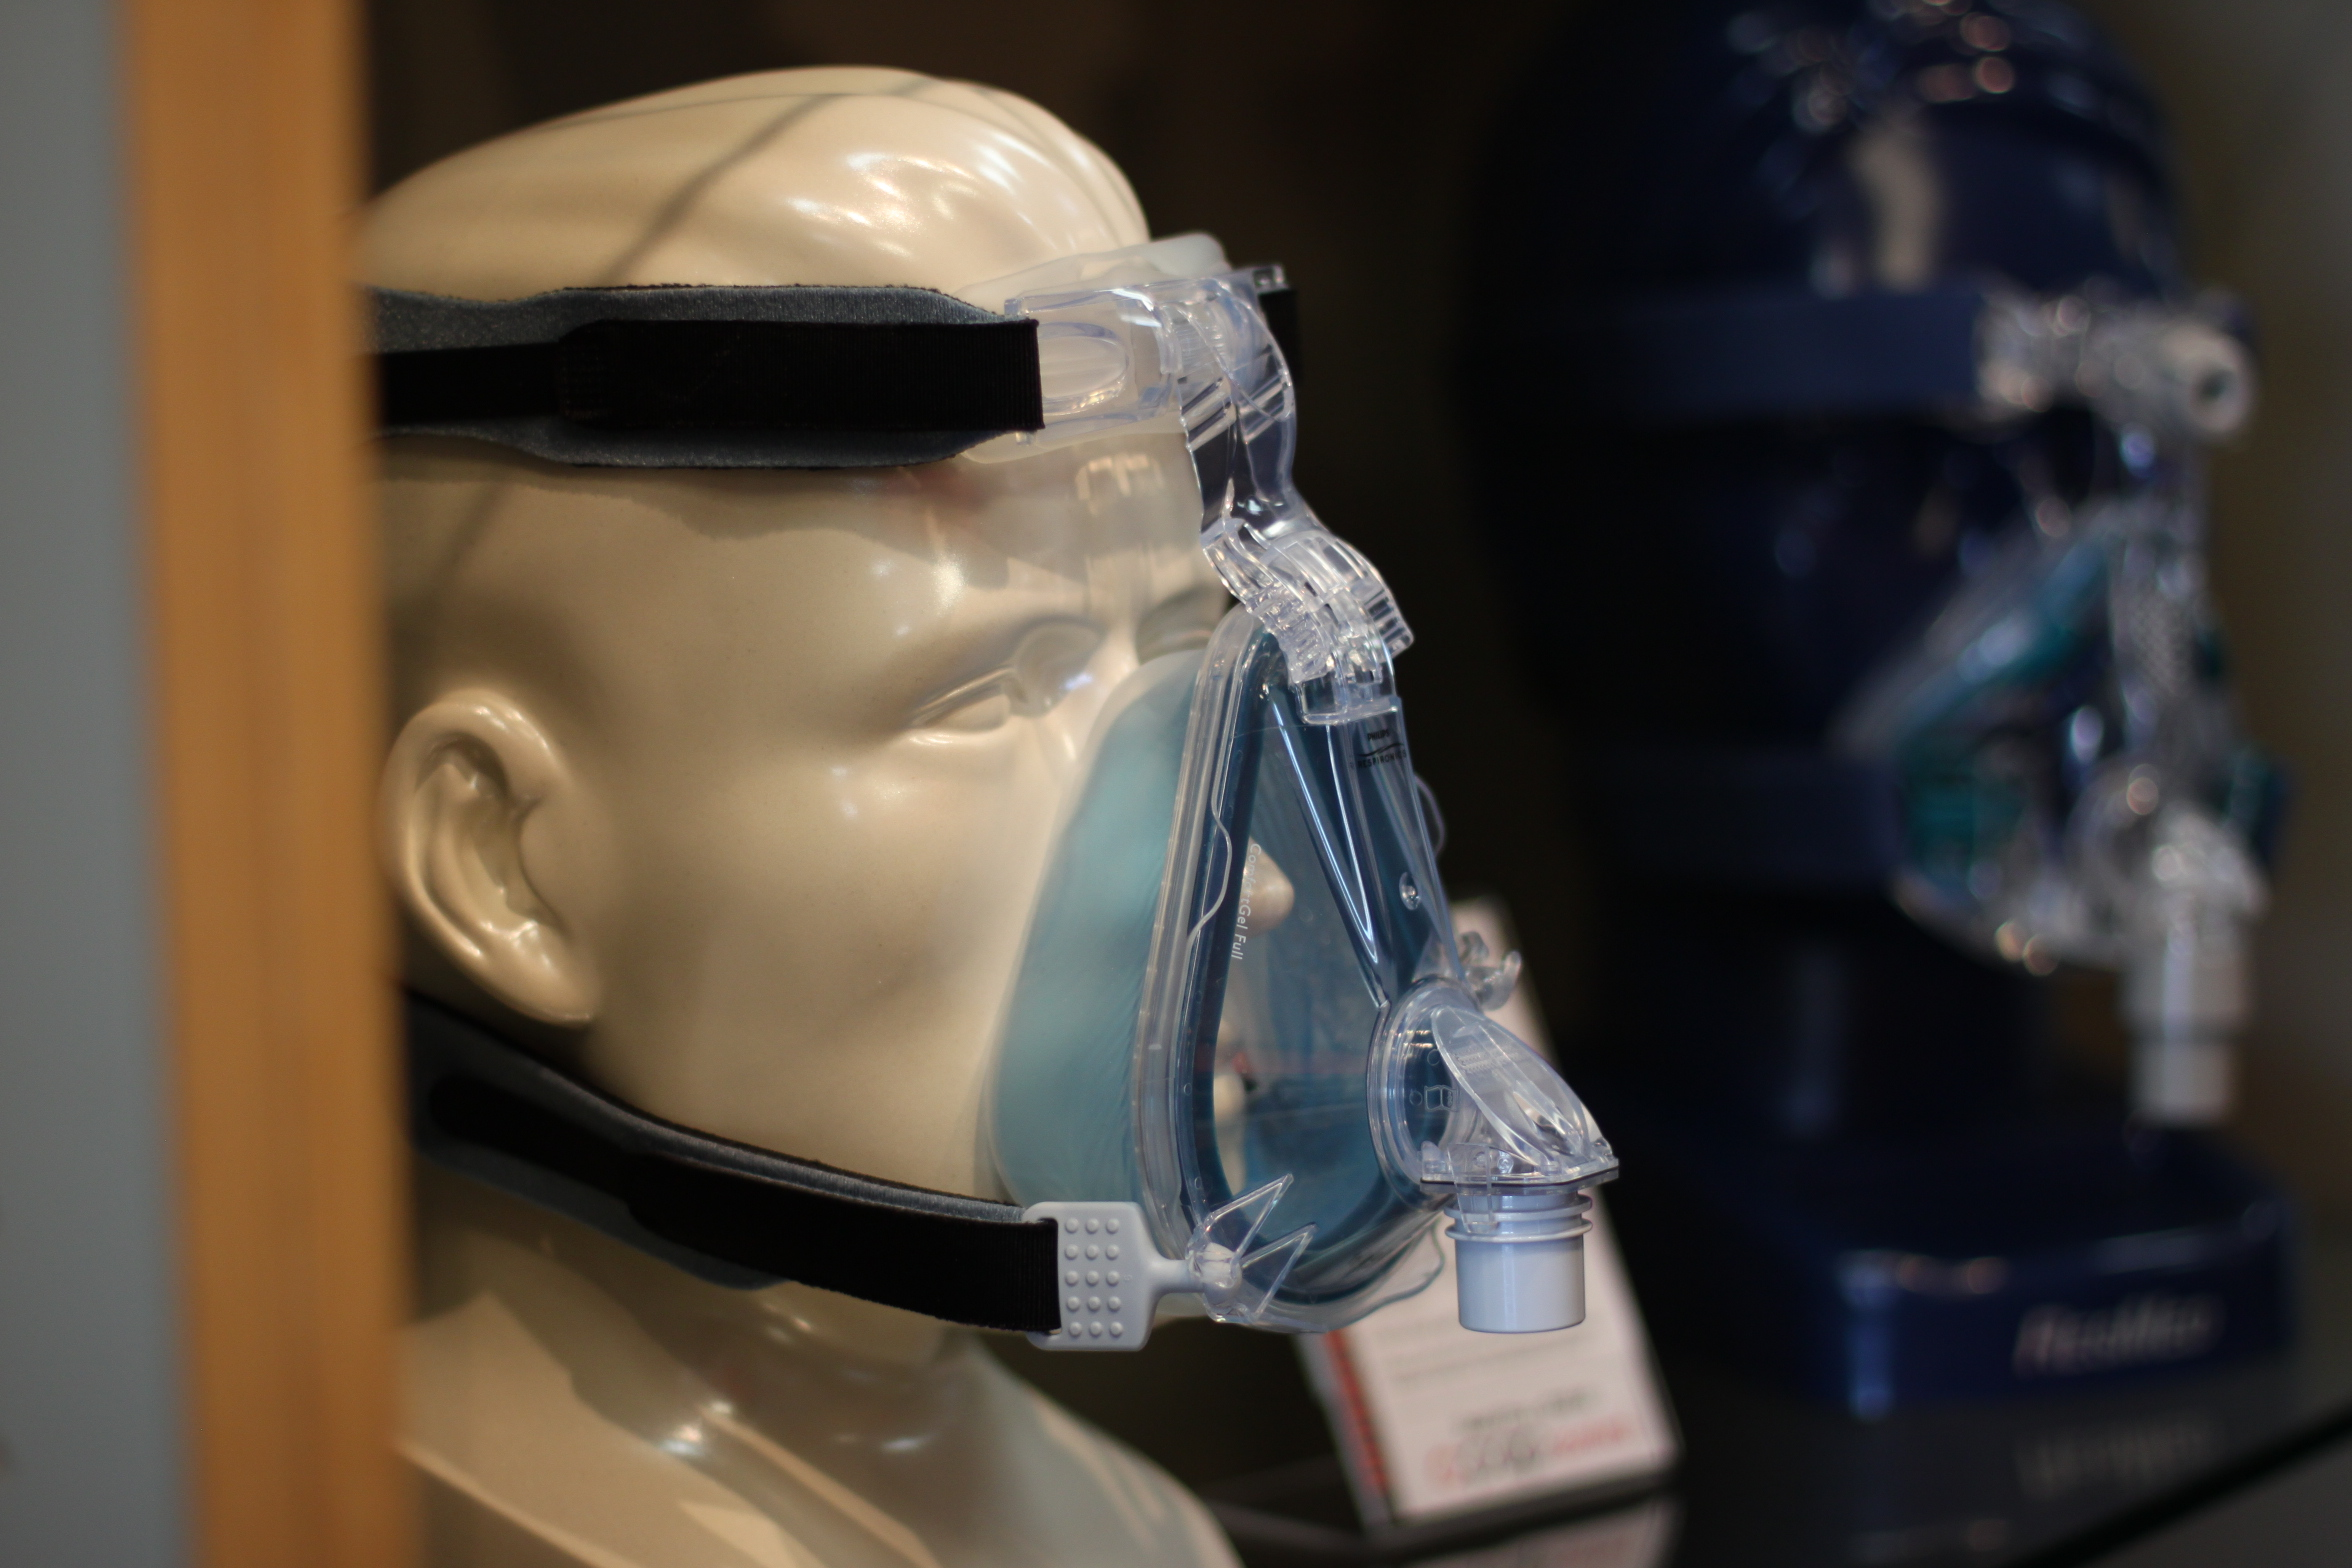 Mask to connect to a Continuous Positive Airway Pressure machine or CPAP machine while sleeping. (Photo: Rachel Tayse/Flickr)